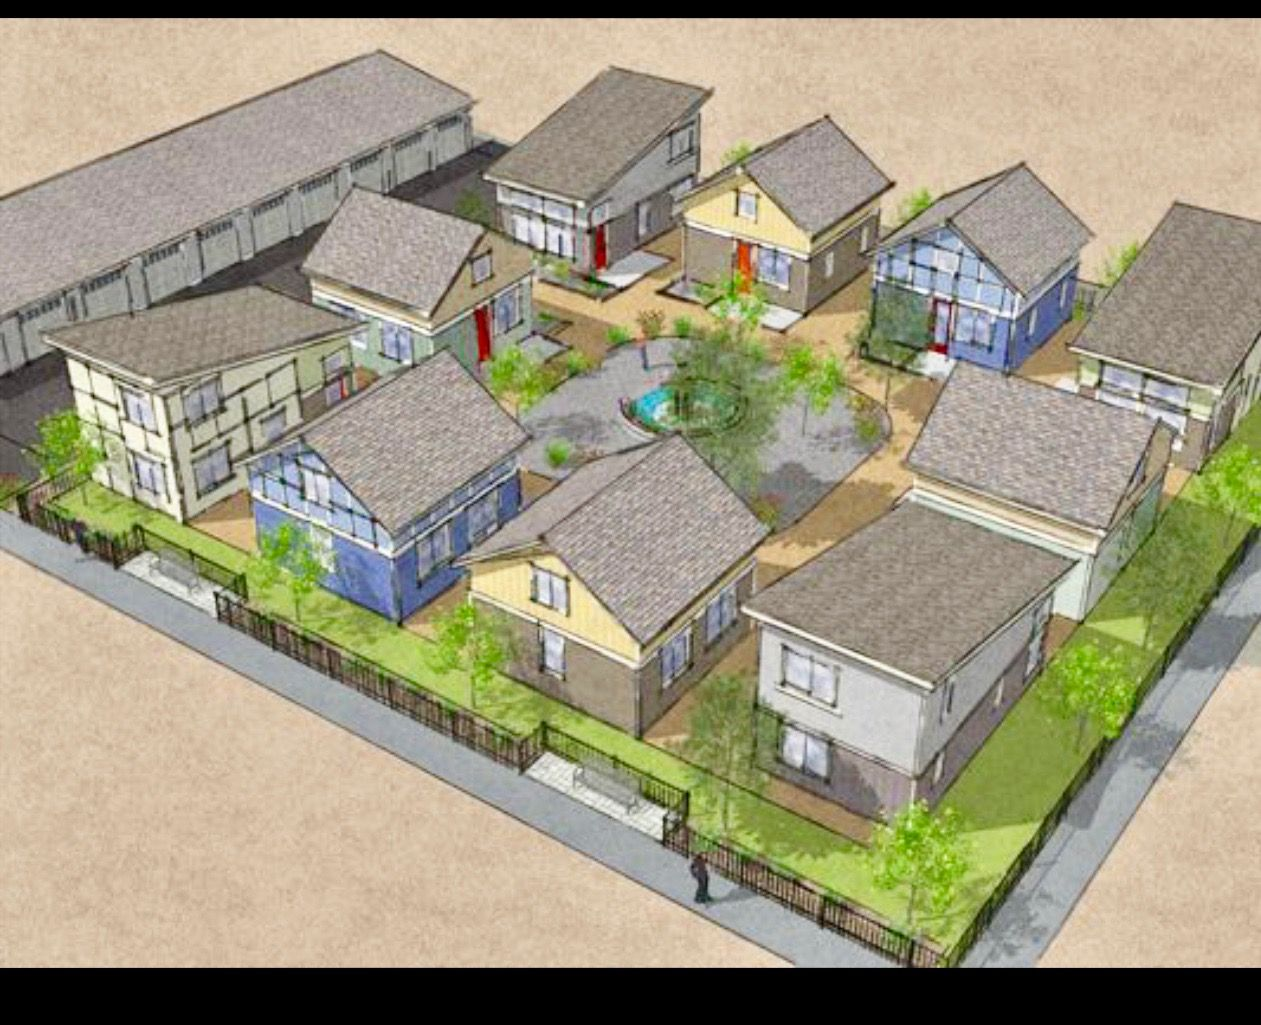 Parking Tiny Community Layout Idea Tiny House Community Tiny House Village Small House Communities